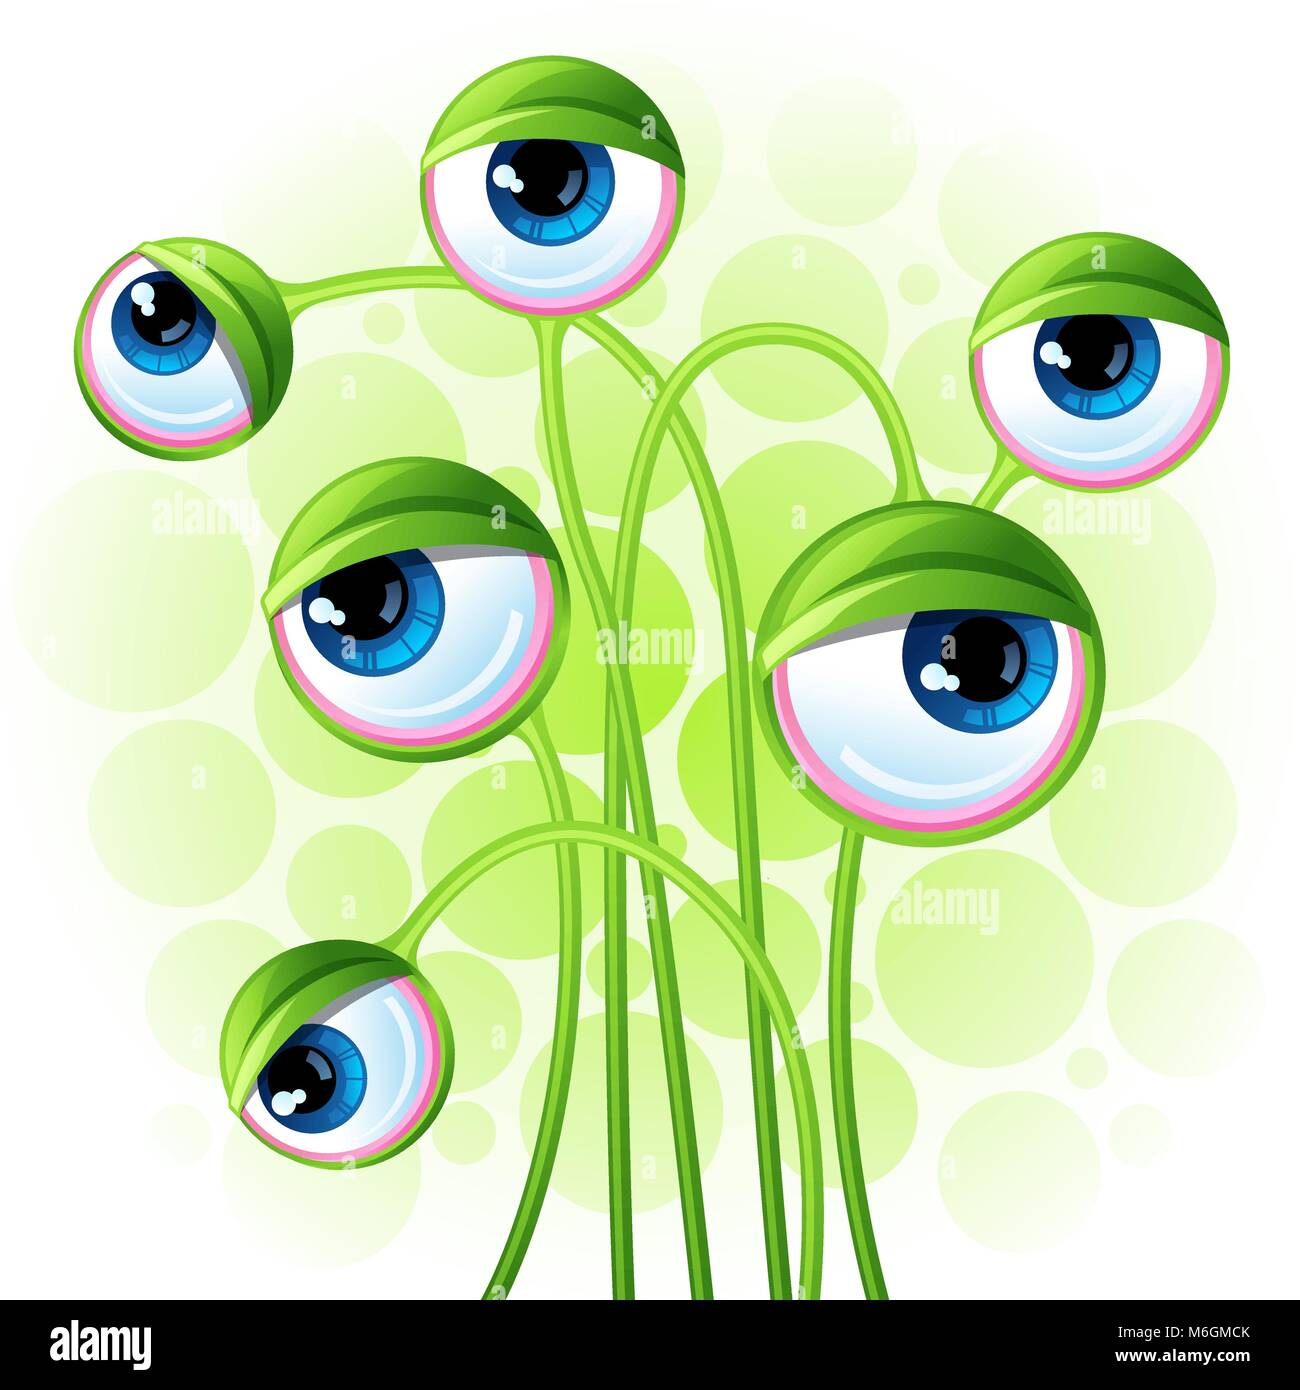 Abstract background with alien eyes - Stock Image